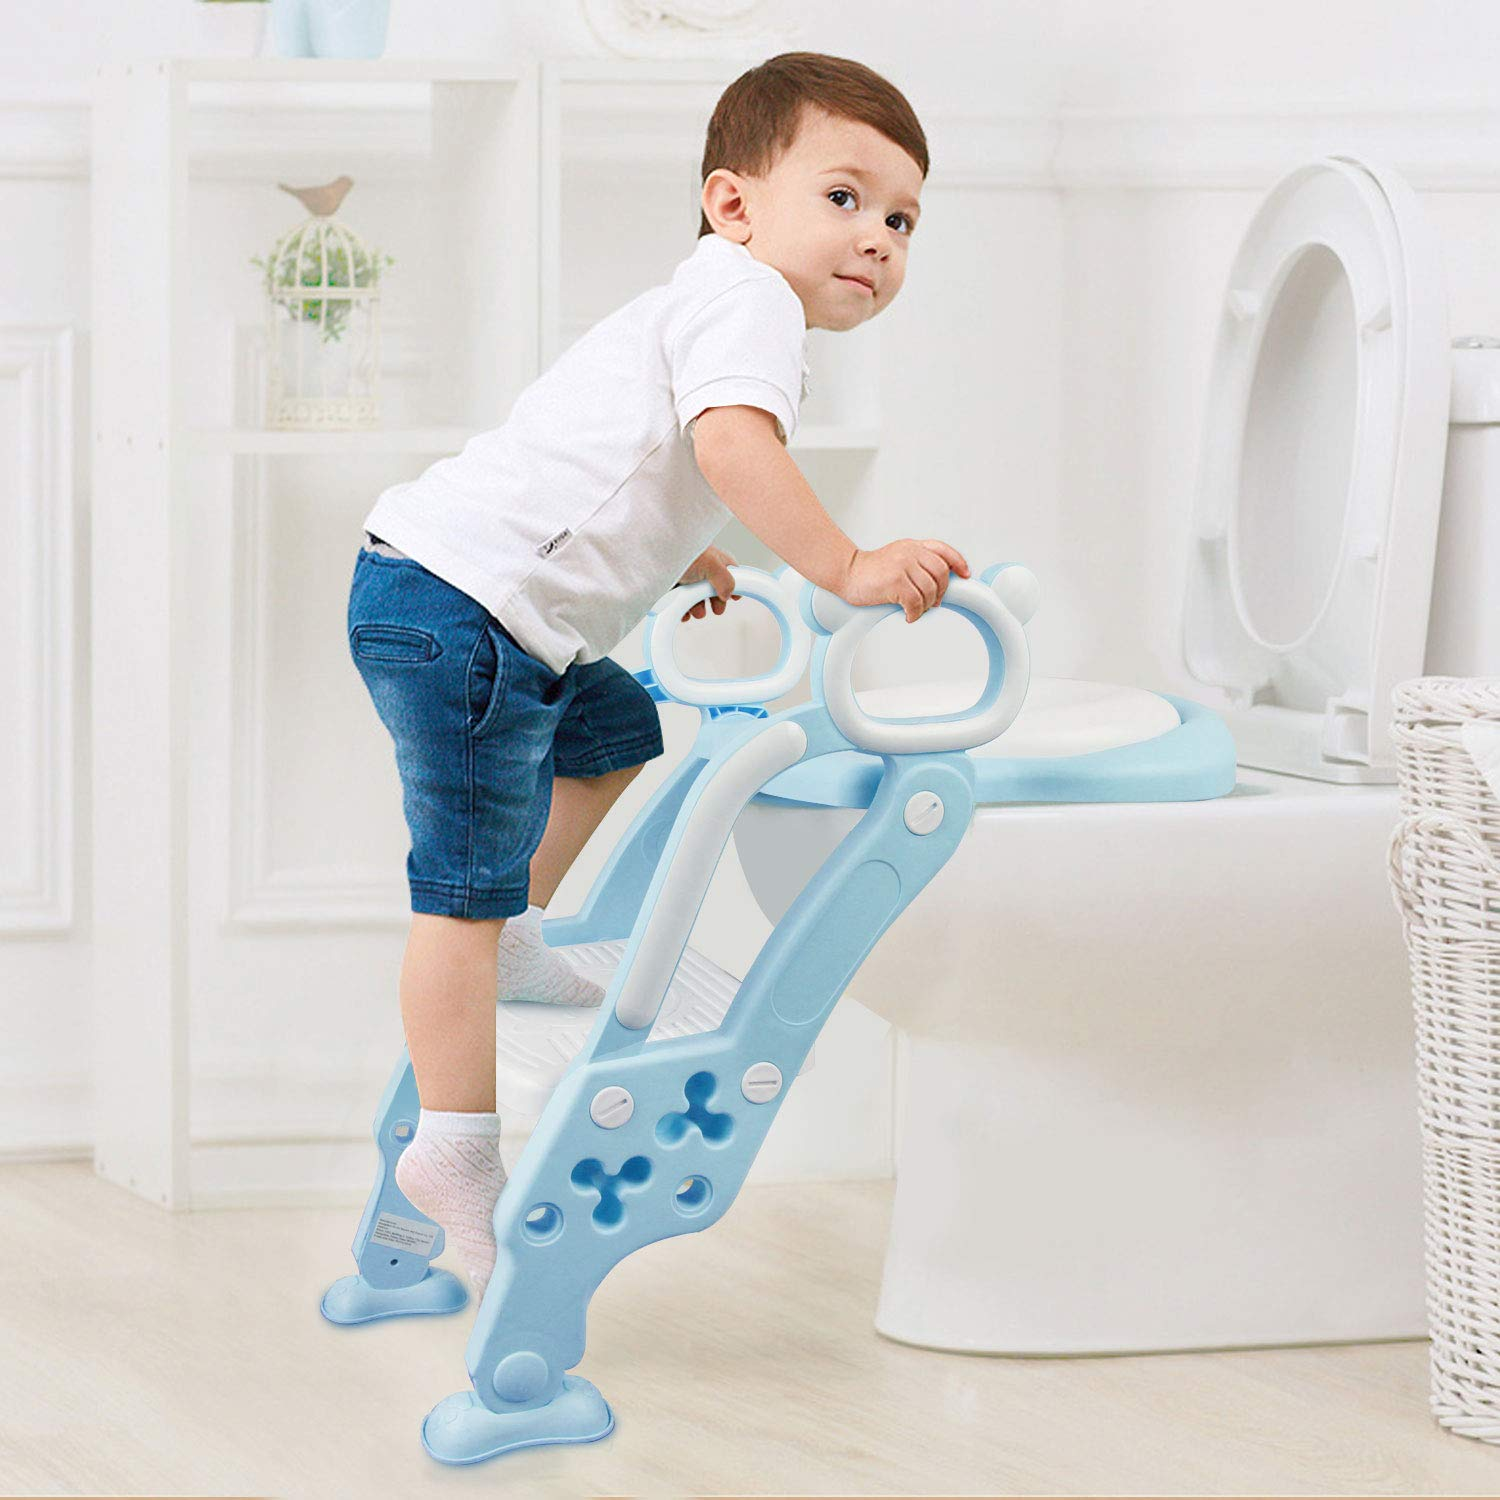 KID'S HOUSE Toddlers Potty Training Chair Seat with Ladder Non-Slip Step and Thickly Cushion for Kids by KID'S HOUSE